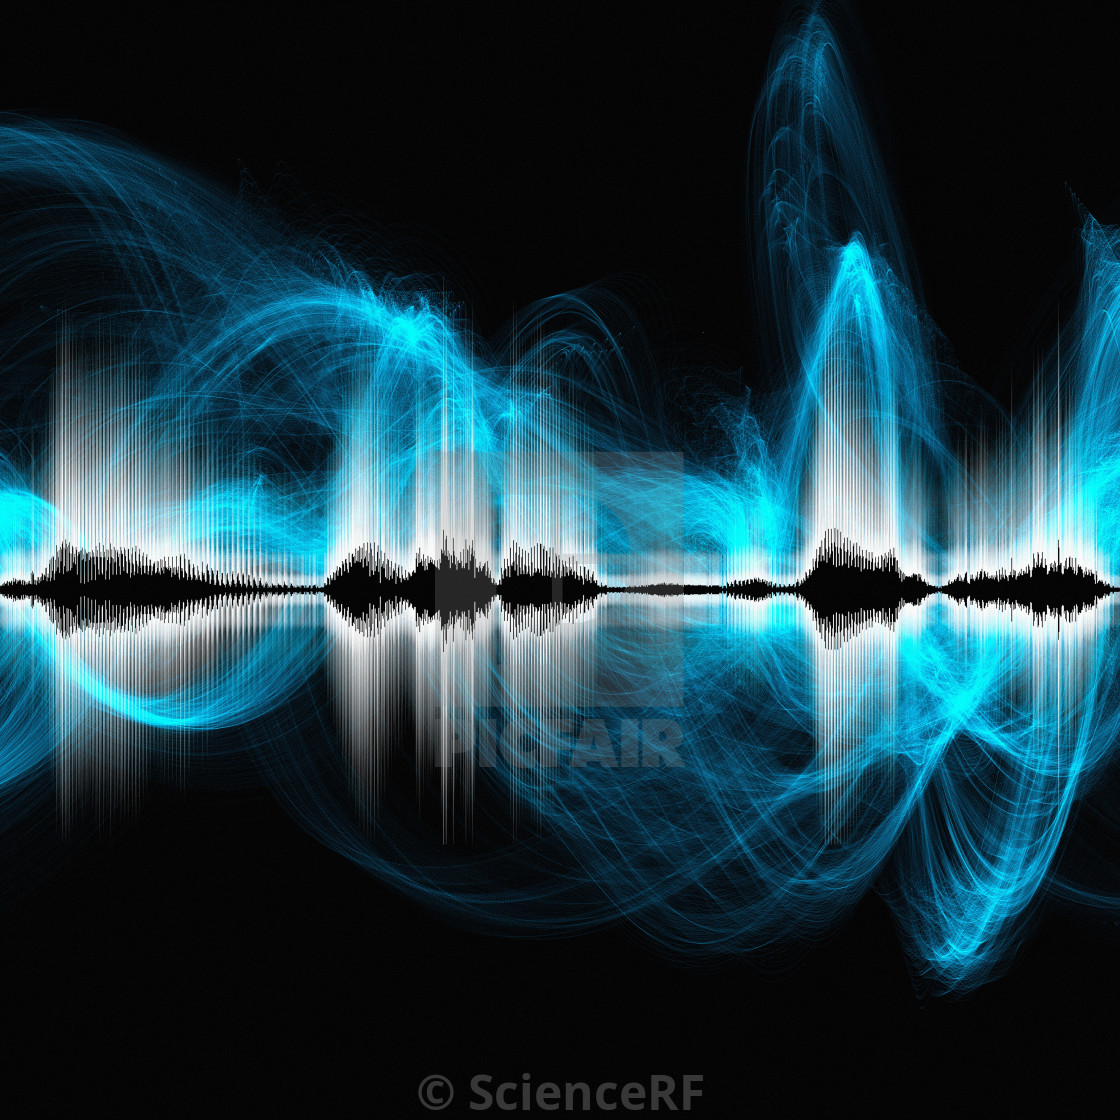 Abstract sound waves - License, download or print for £39 00